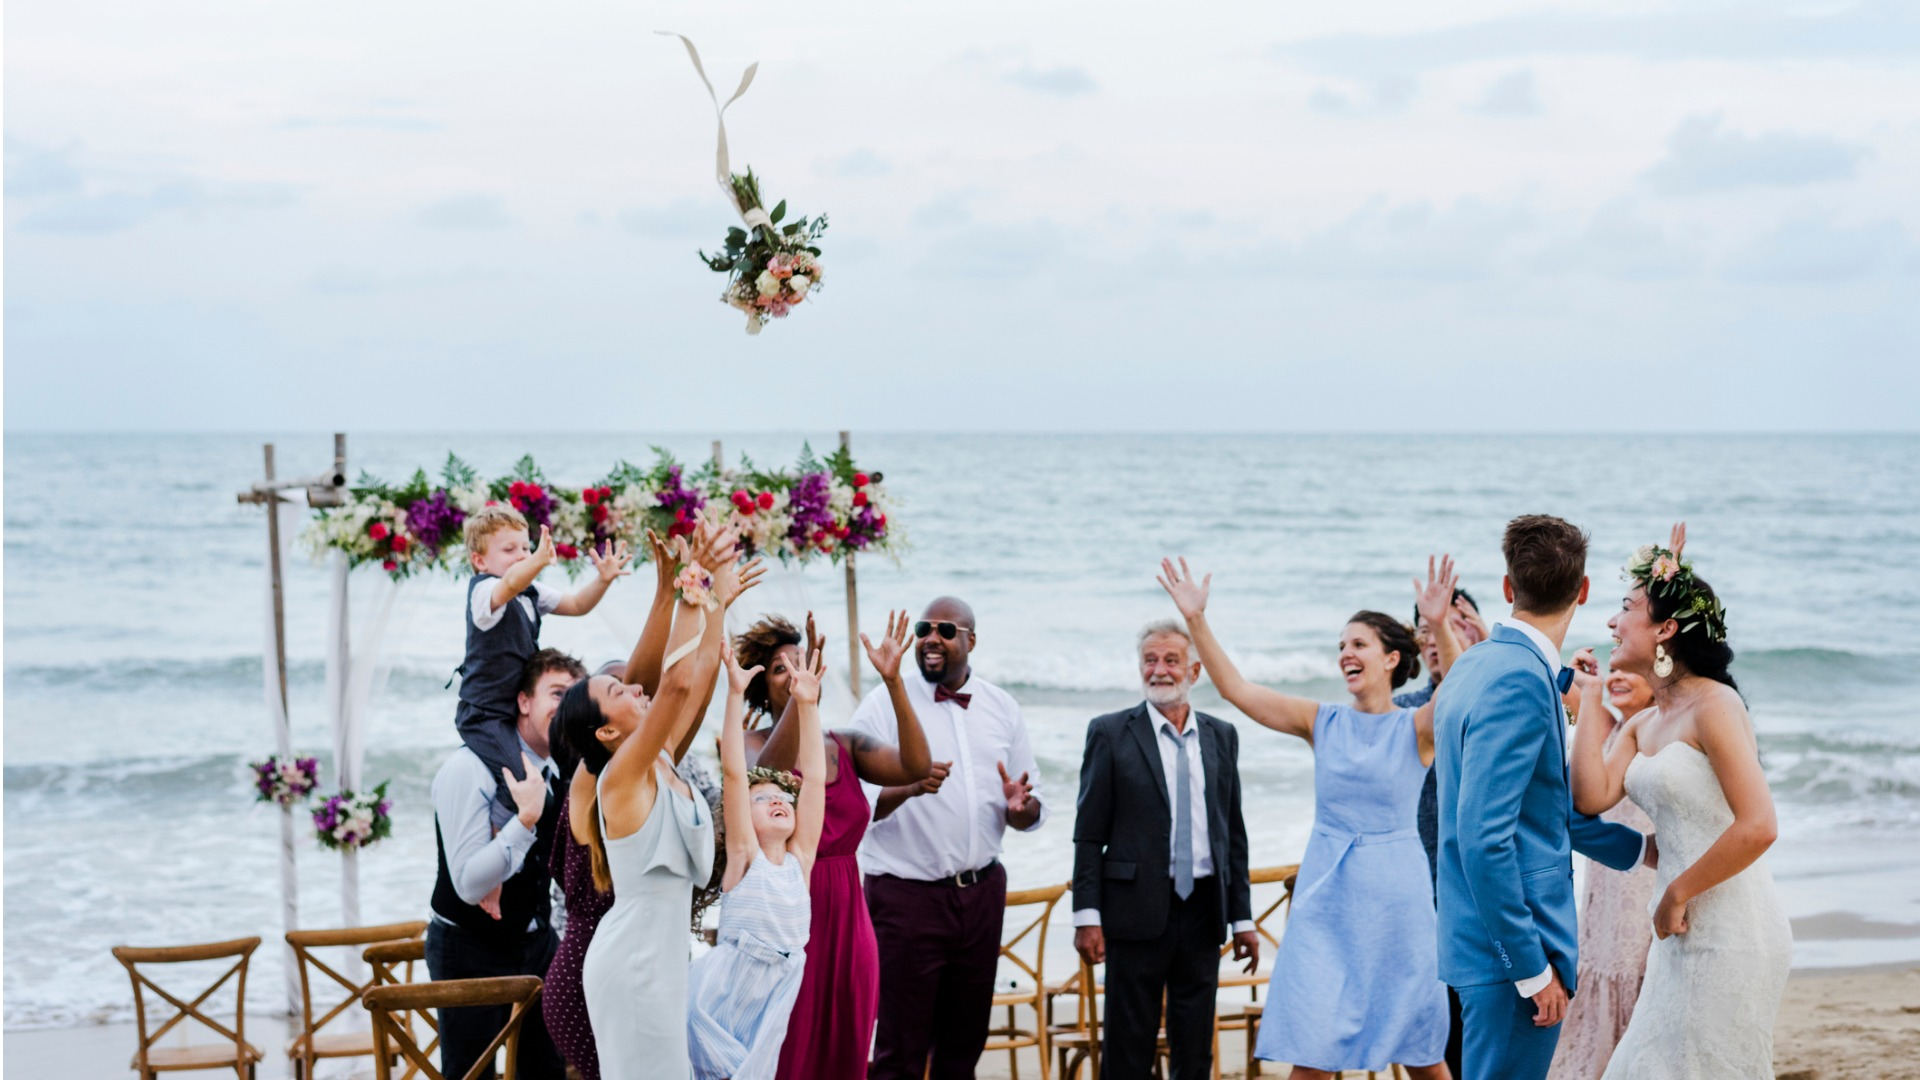 bride-throwing-the-bouquet-at-wedding-picture-id1040949944